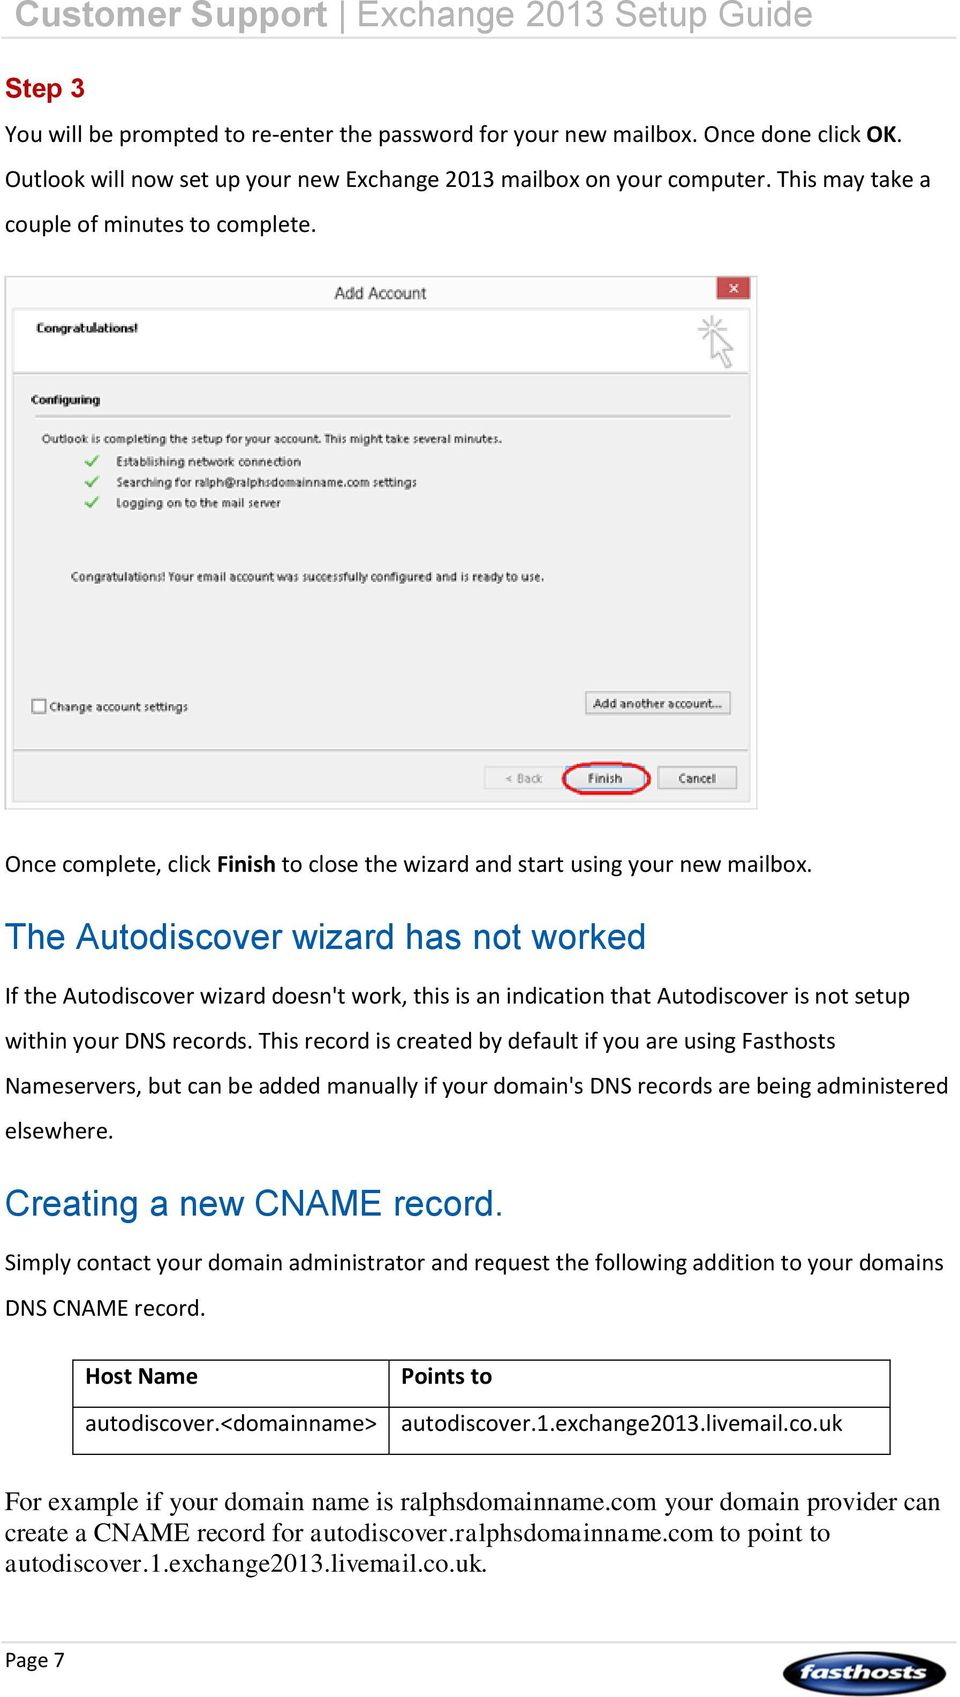 The Autodiscover wizard has not worked If the Autodiscover wizard doesn't work, this is an indication that Autodiscover is not setup within your DNS records.